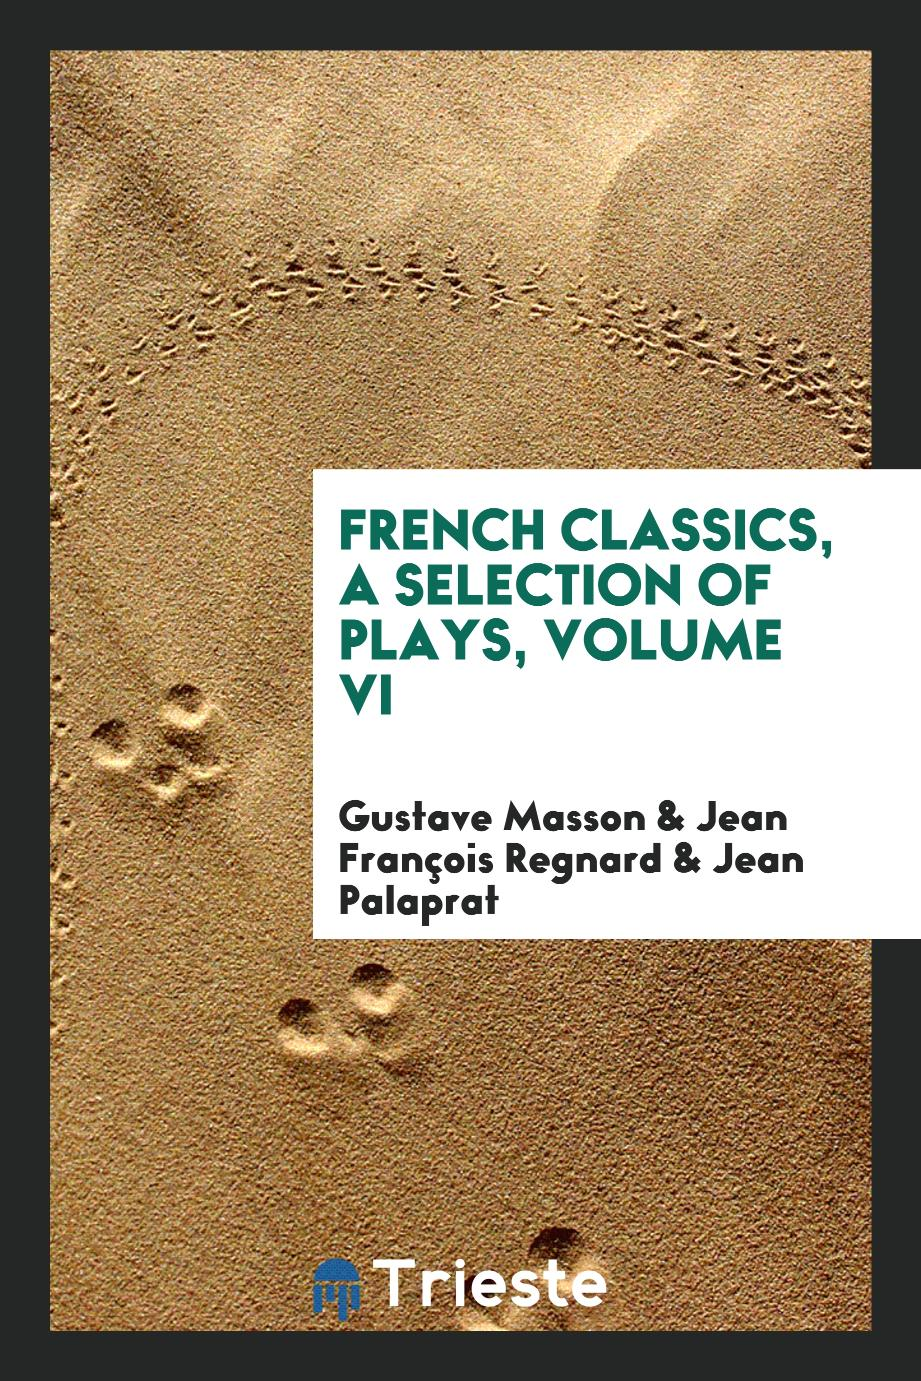 French Classics, A selection of plays, Volume VI